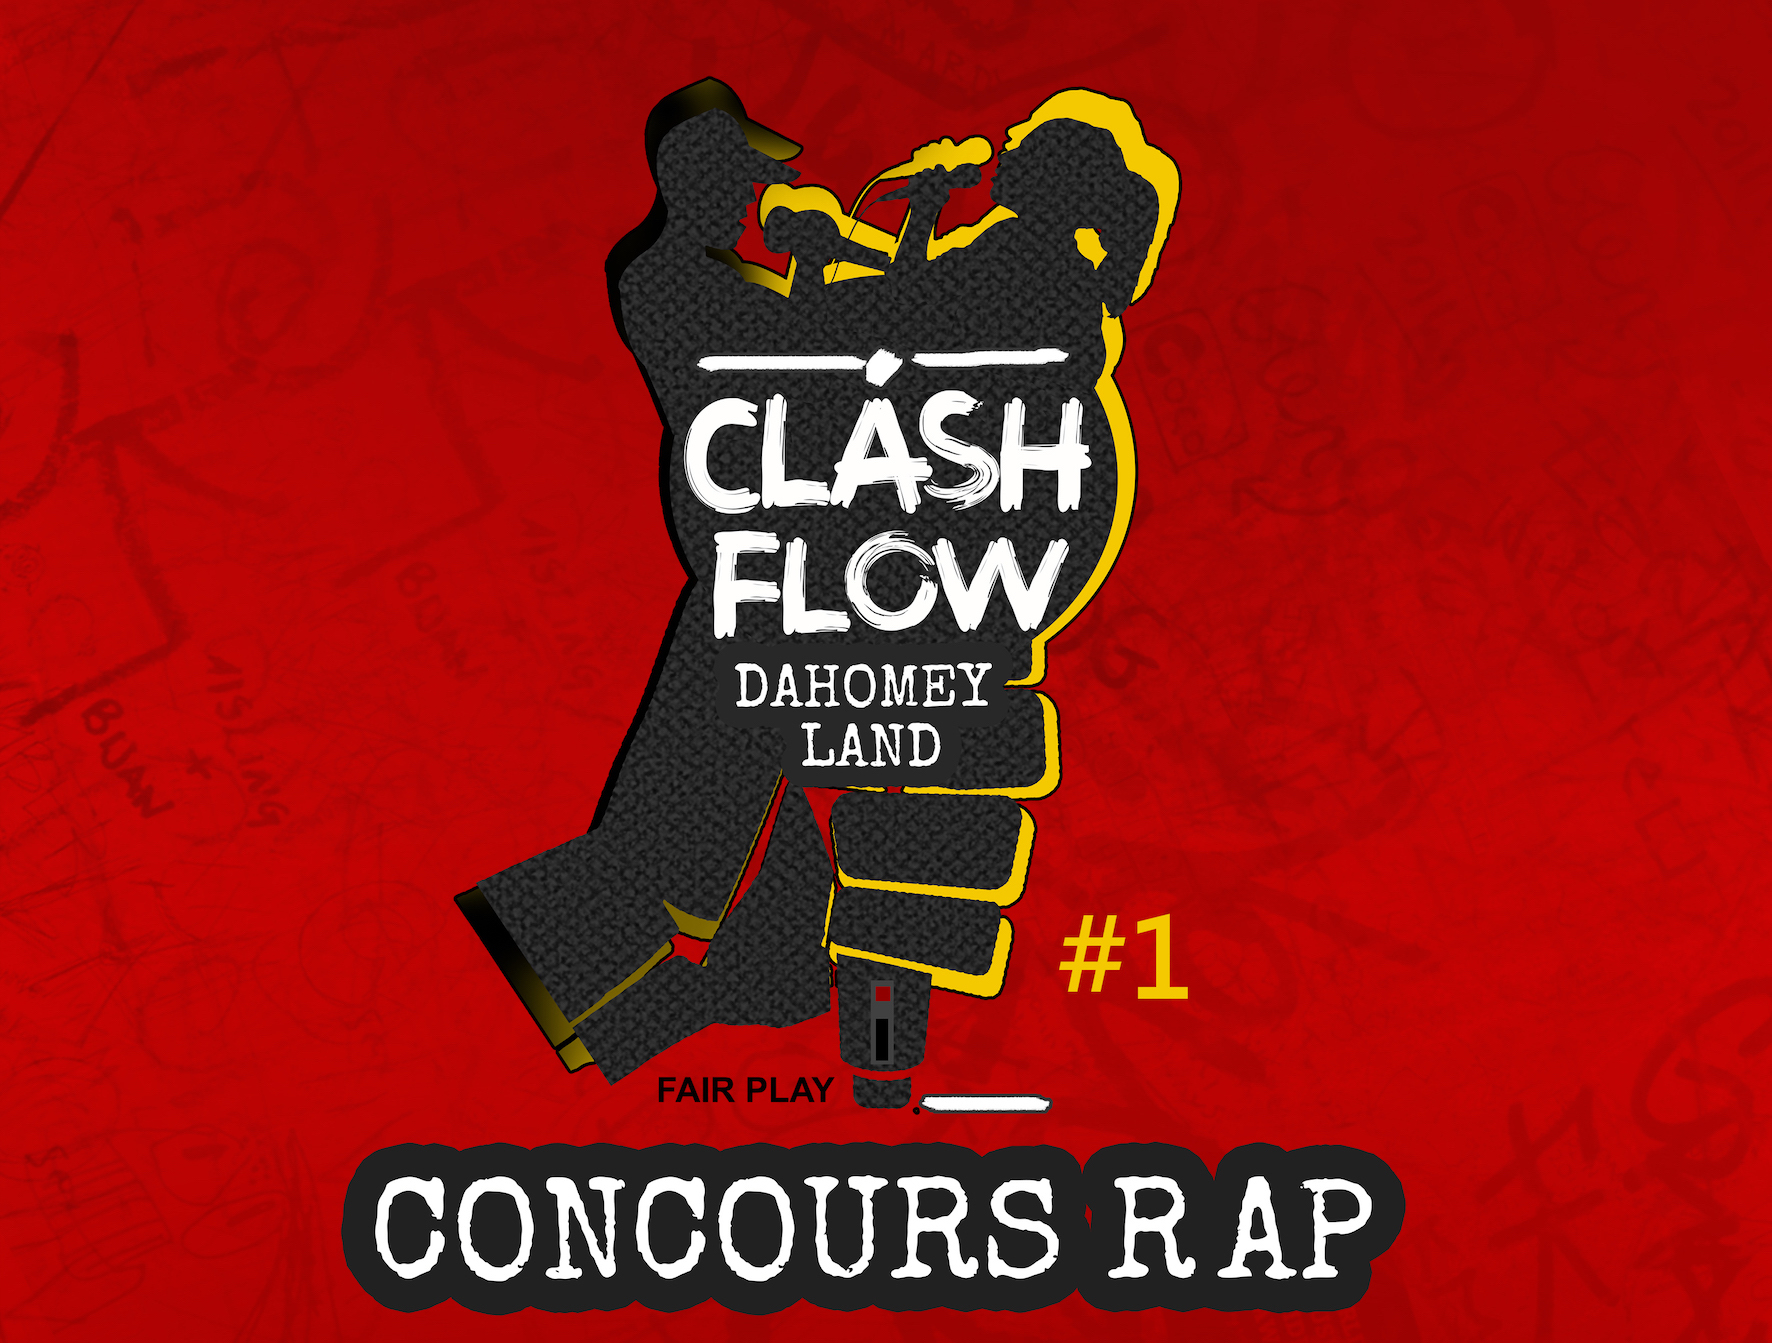 Clash Flow, Dahomey Land